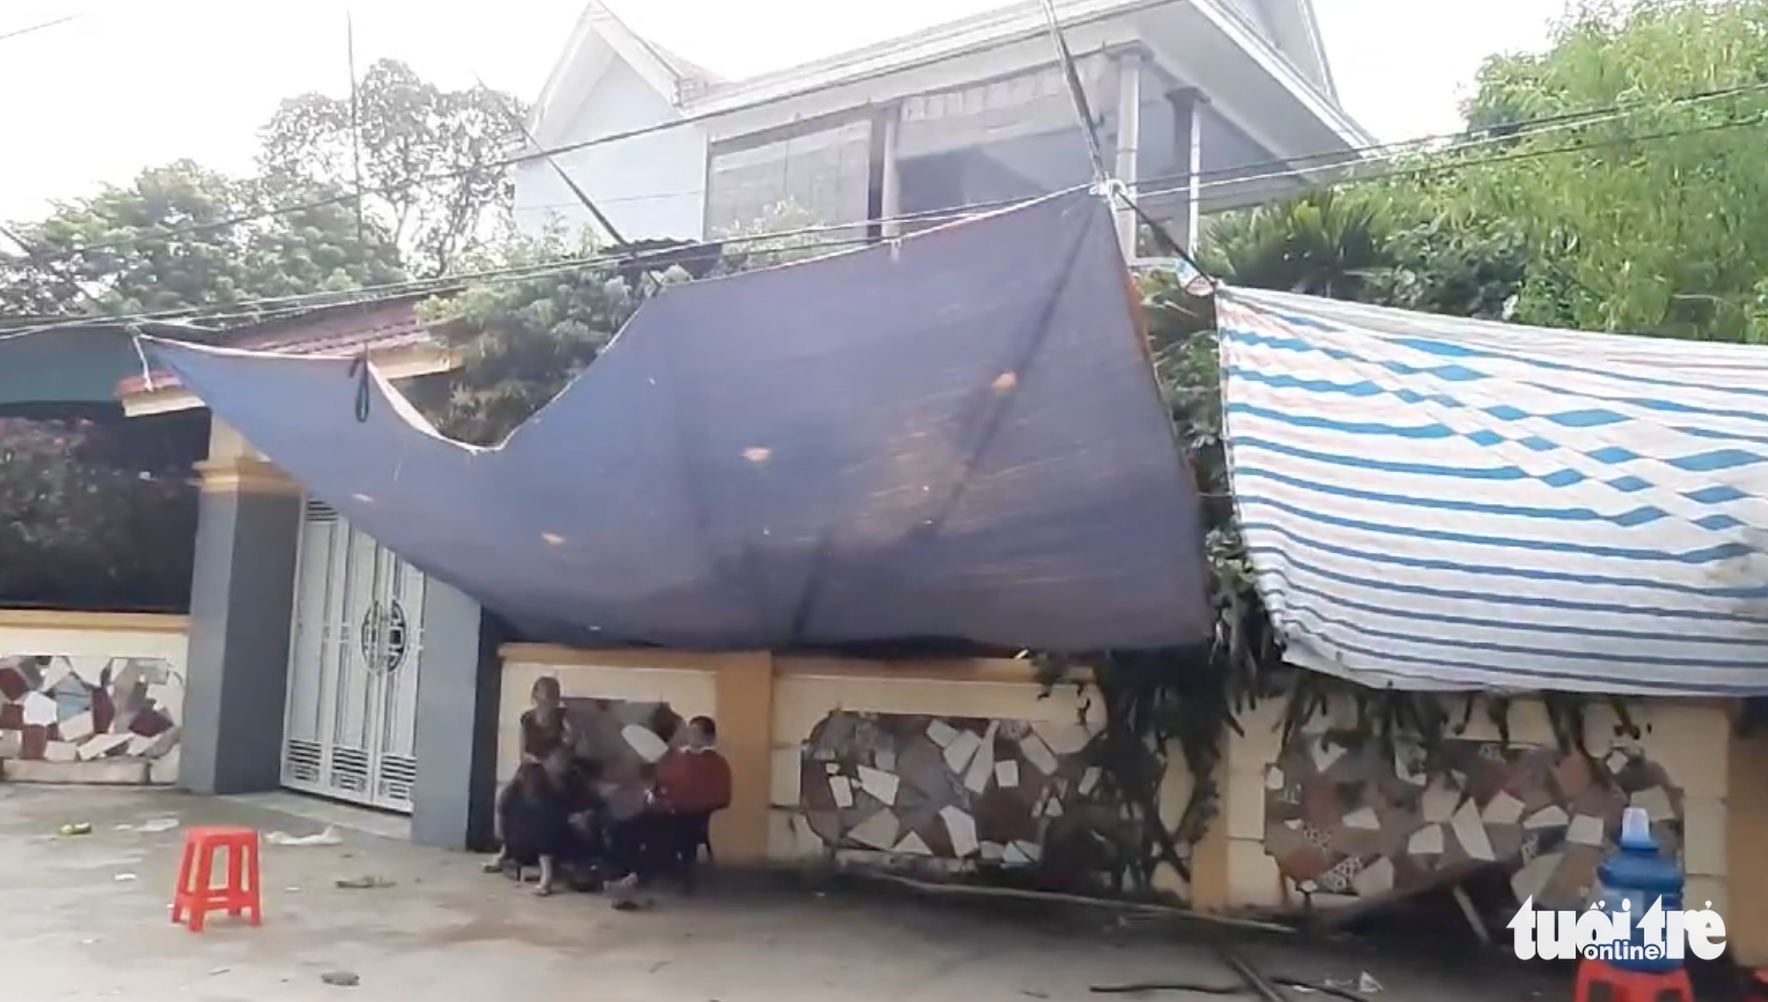 Ngo Thi Chung and her family members erect a tent in front of the house of a former police officer to pressure him into paying back  VND682 million (US$30,000) in debt in Thanh Chuong District, Nghe An Province, Vietnam. Photo: Doan Hoa / Tuoi Tre